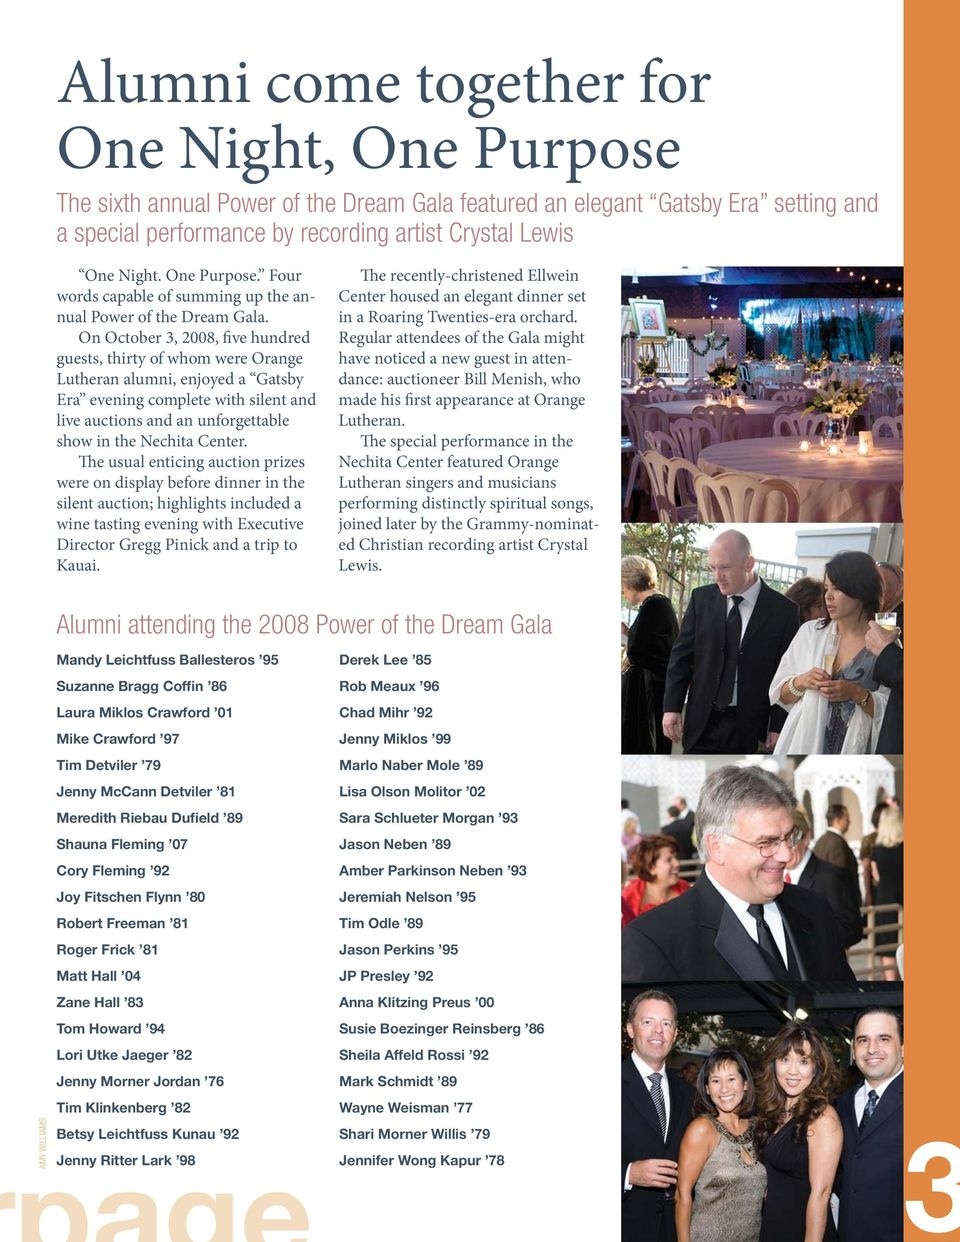 On October 3, 2008, five hundred guests, thirty of whom were Orange Lutheran alumni, enjoyed a Gatsby Era evening complete with silent and live auctions and an unforgettable show in the Nechita